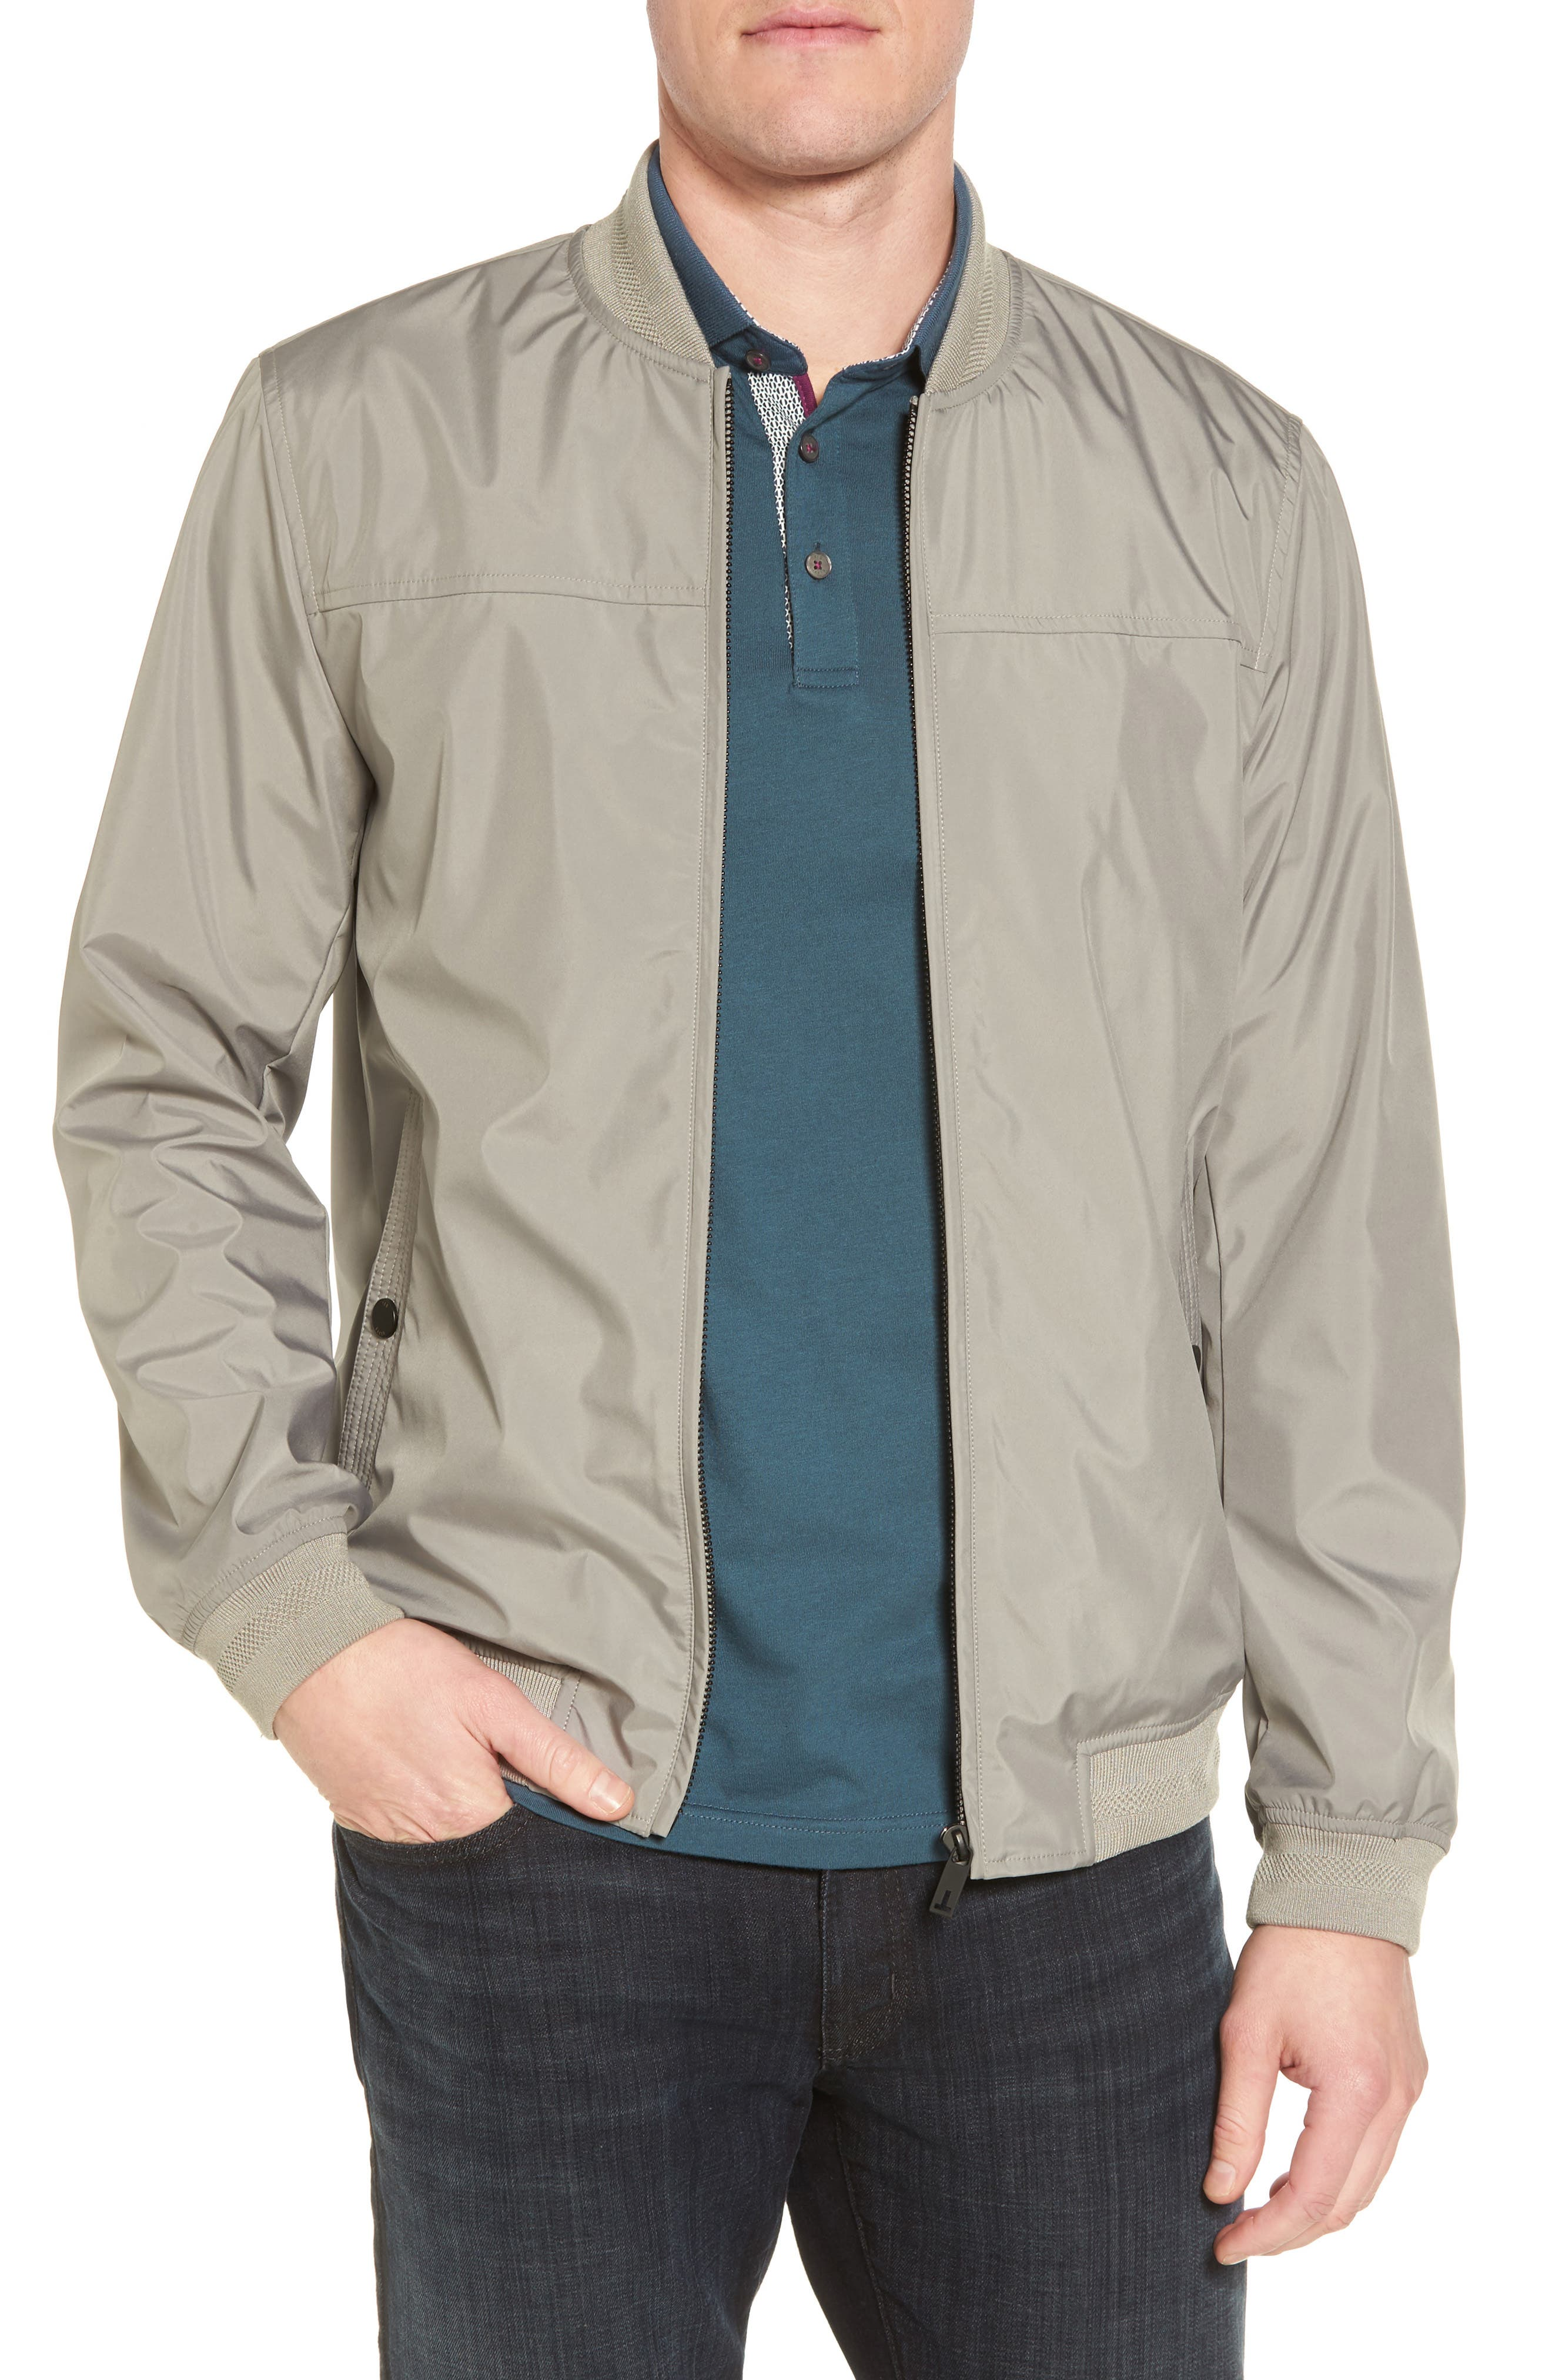 Ohta Bomber Jacket,                             Main thumbnail 1, color,                             030